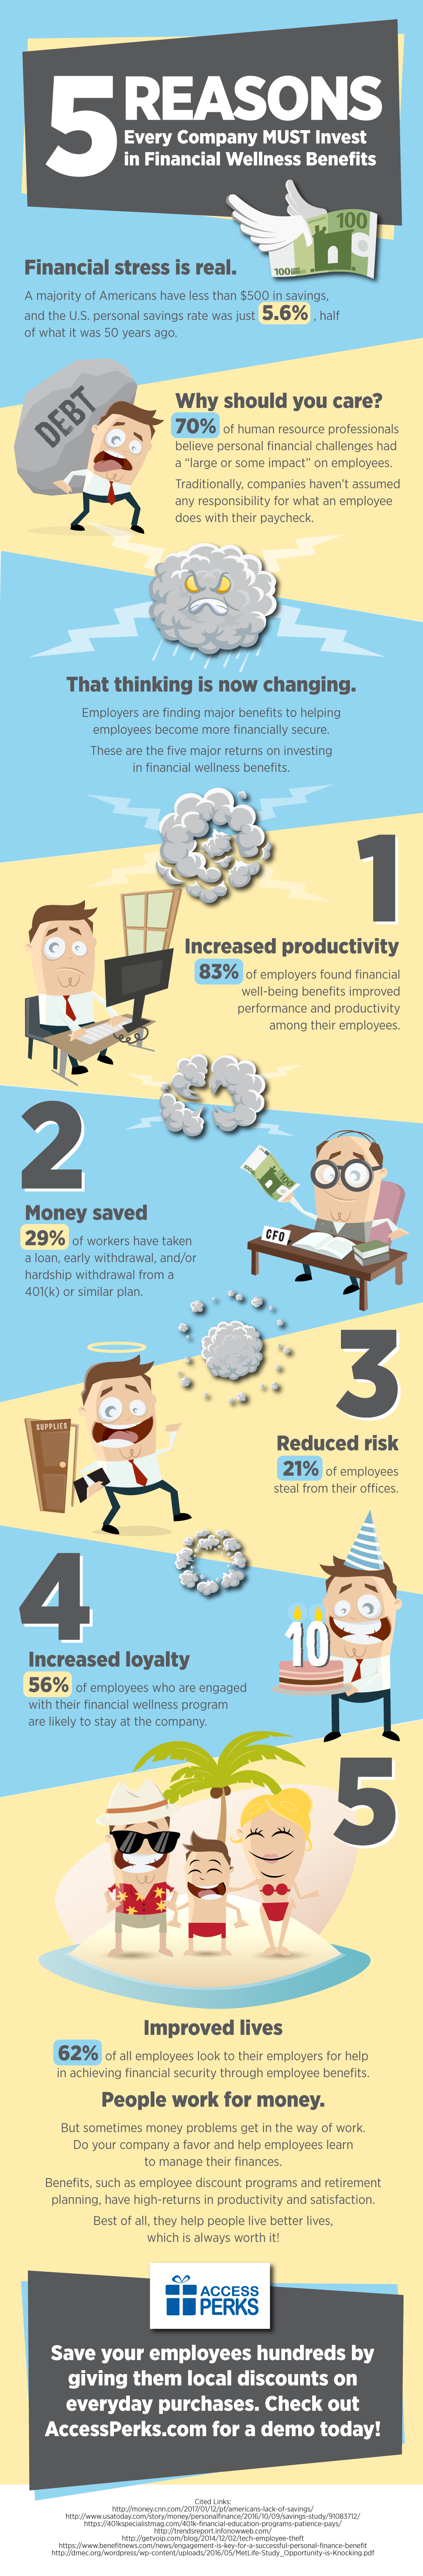 M13484-Financial-Wellness-Benefits-Infographic vP3.png